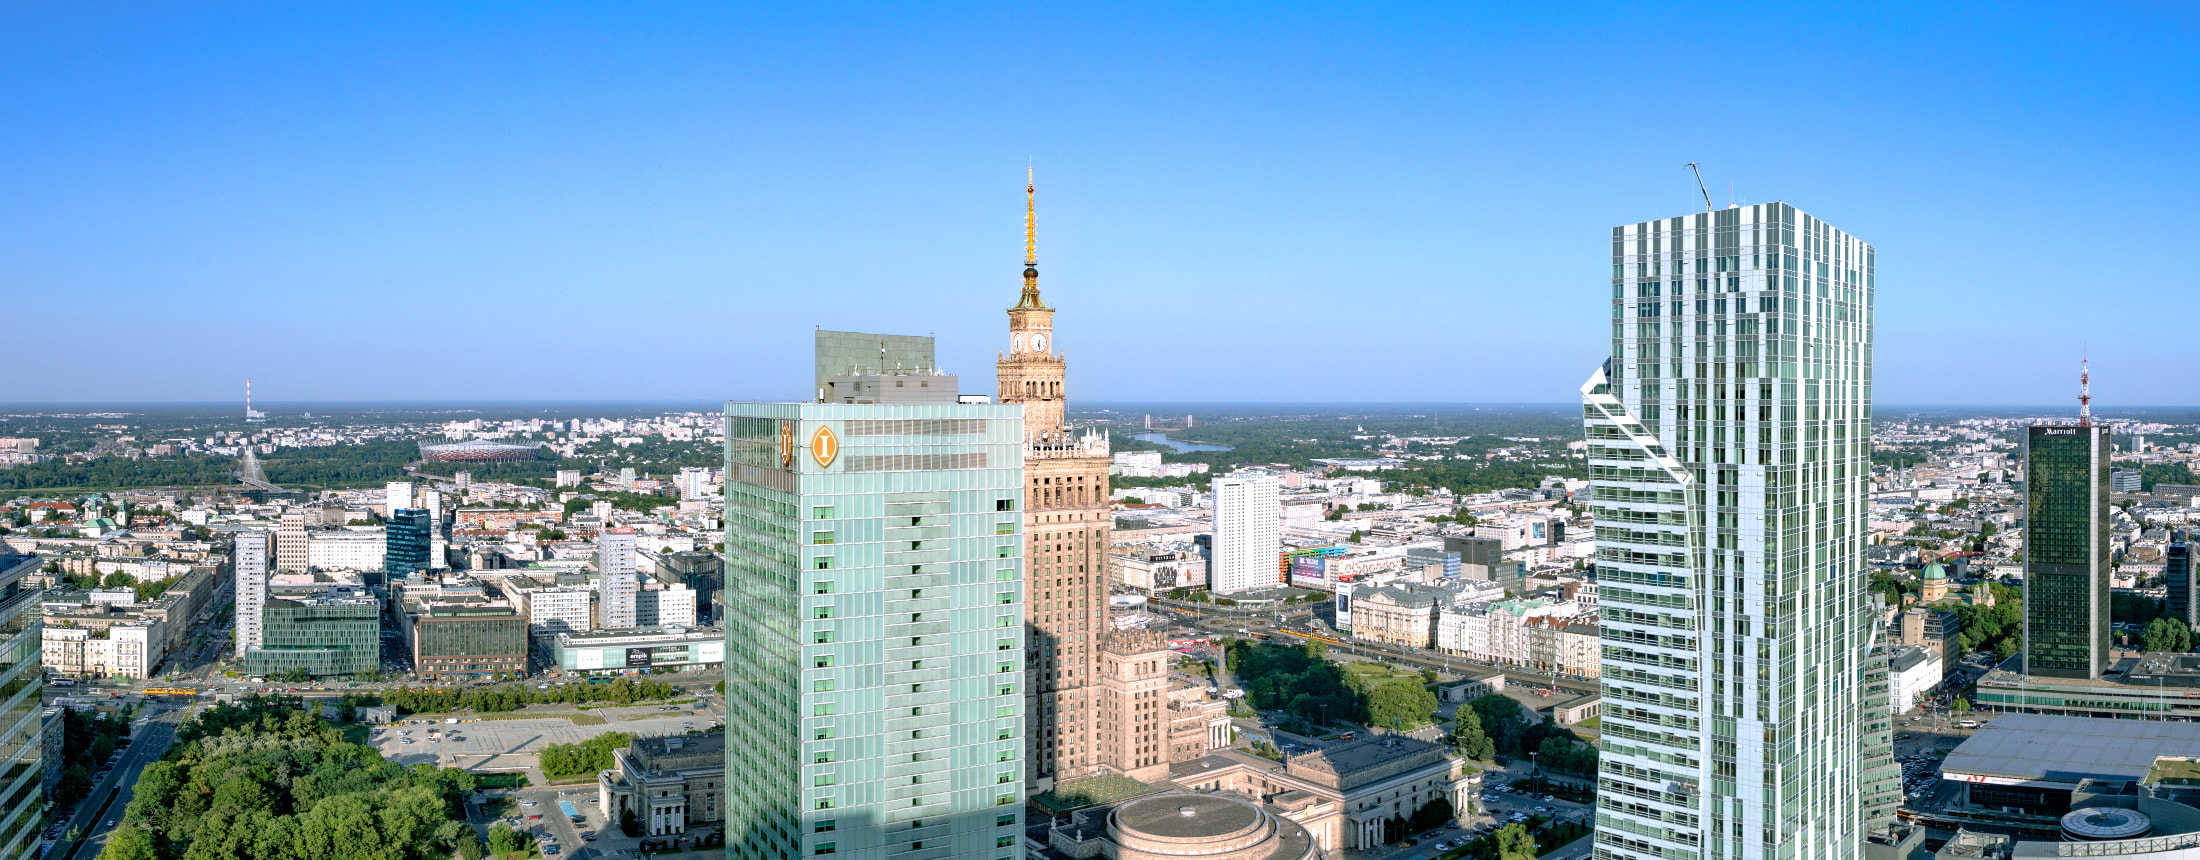 Panoramic view of Warsaw from the Rondo 1 rooftop